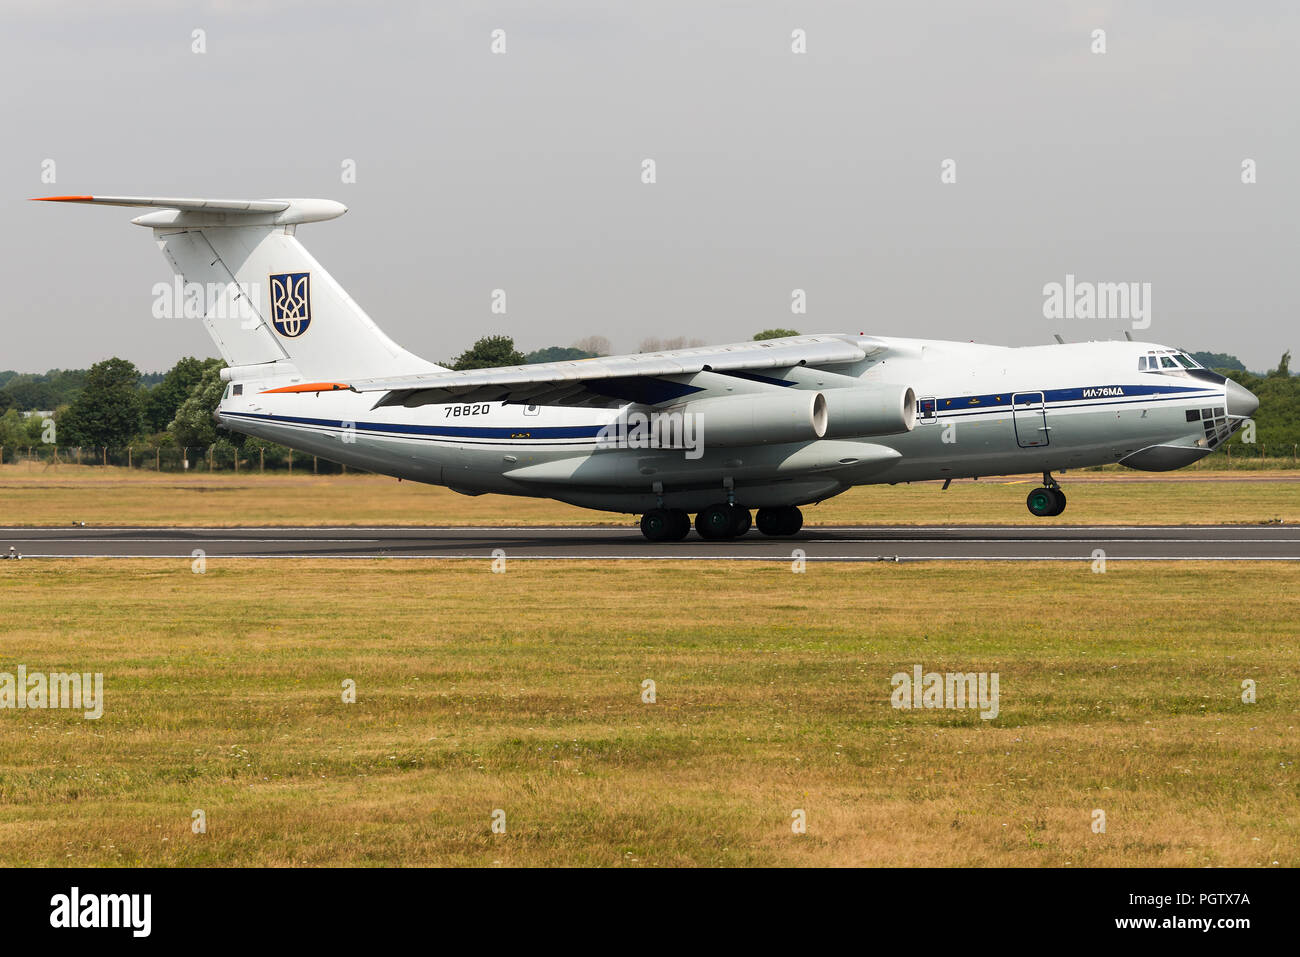 An Ilyushin Il-76 'Candid' military transport aircraft of the Ukrainian Air Force at the Royal International Air Tattoo 2018. - Stock Image